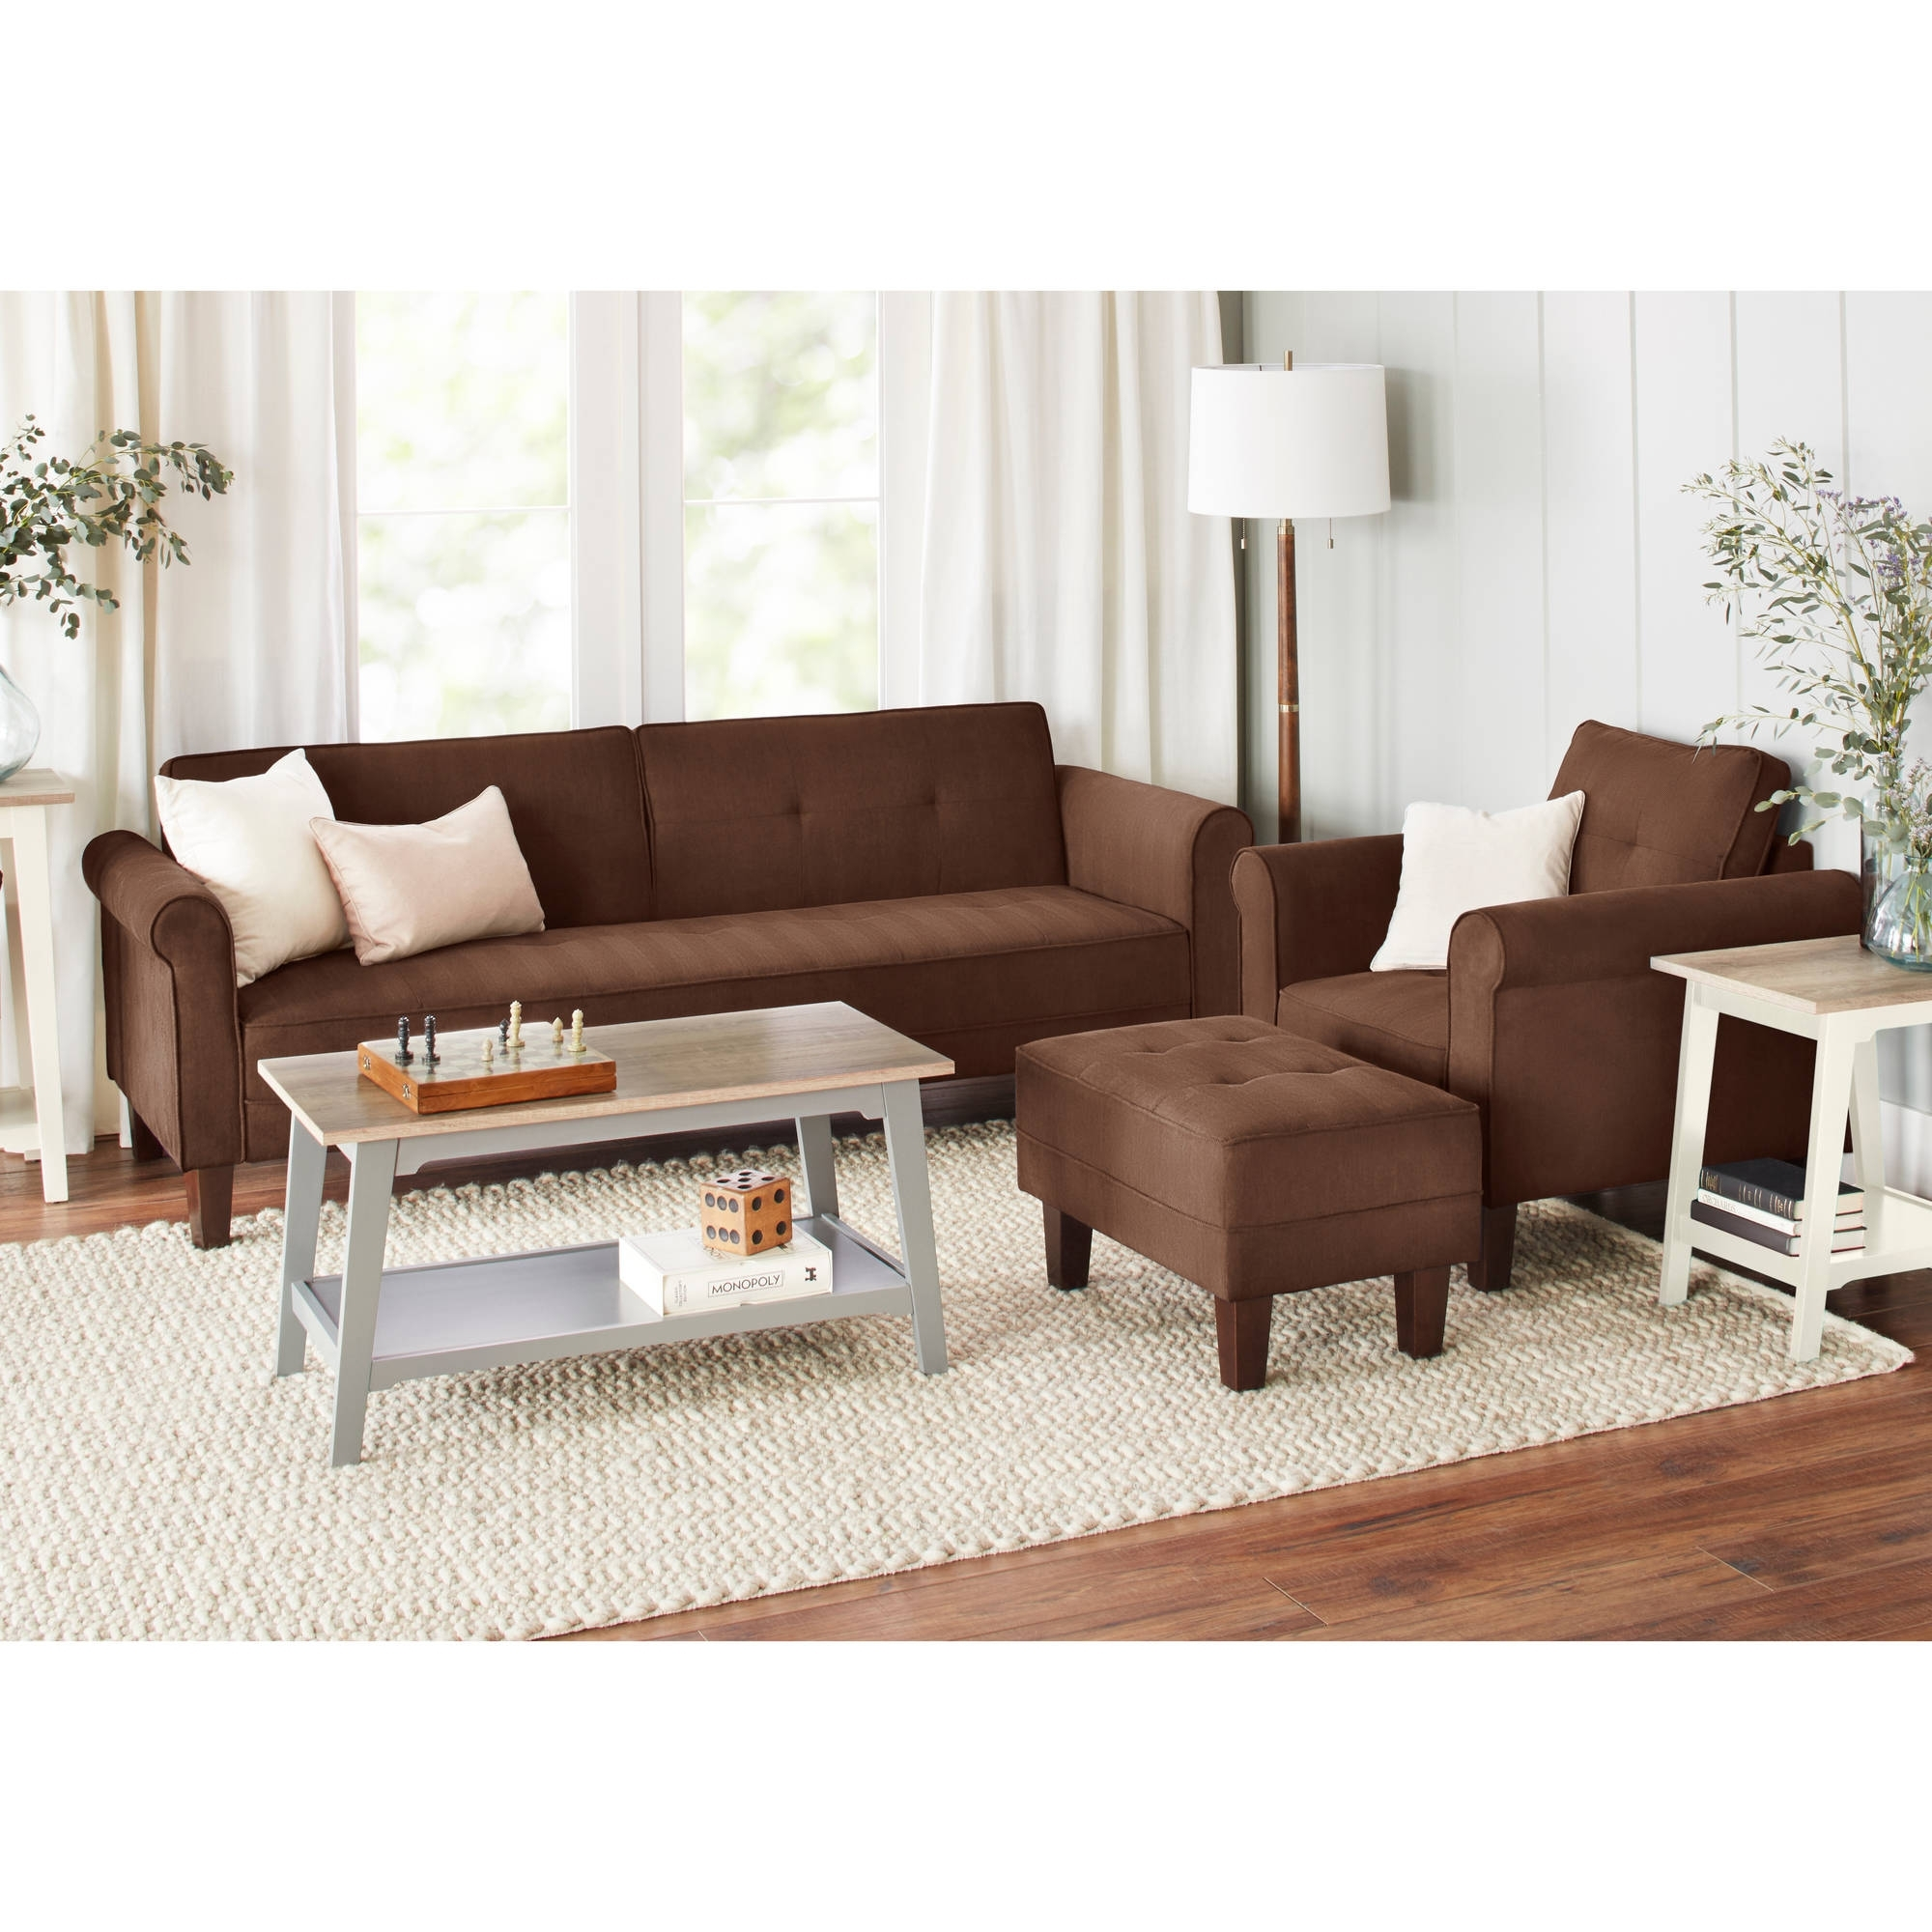 10 Best Collection of Kansas City Mo Sectional Sofas